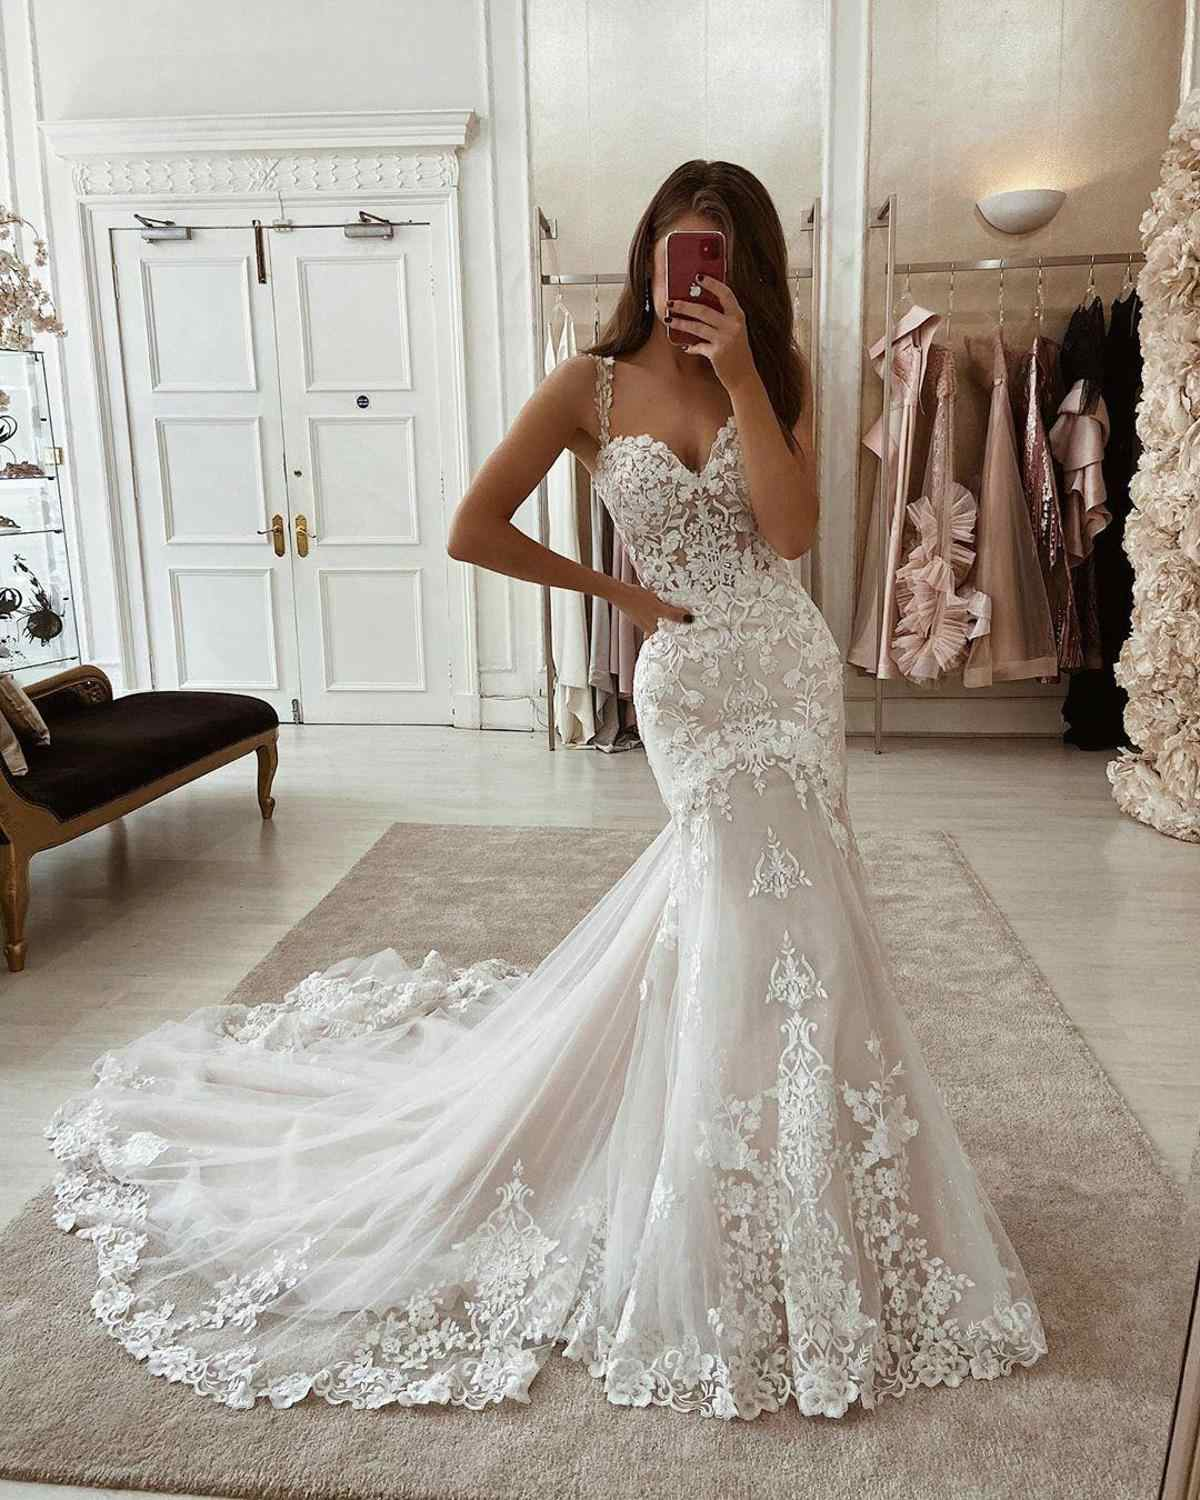 LORIE Ivory Mermaid Wedding Dresses Lace Appliques Tulle Bridal Gowns with  Train Sweetheart Spaghetti Straps Vintage Gowns 18